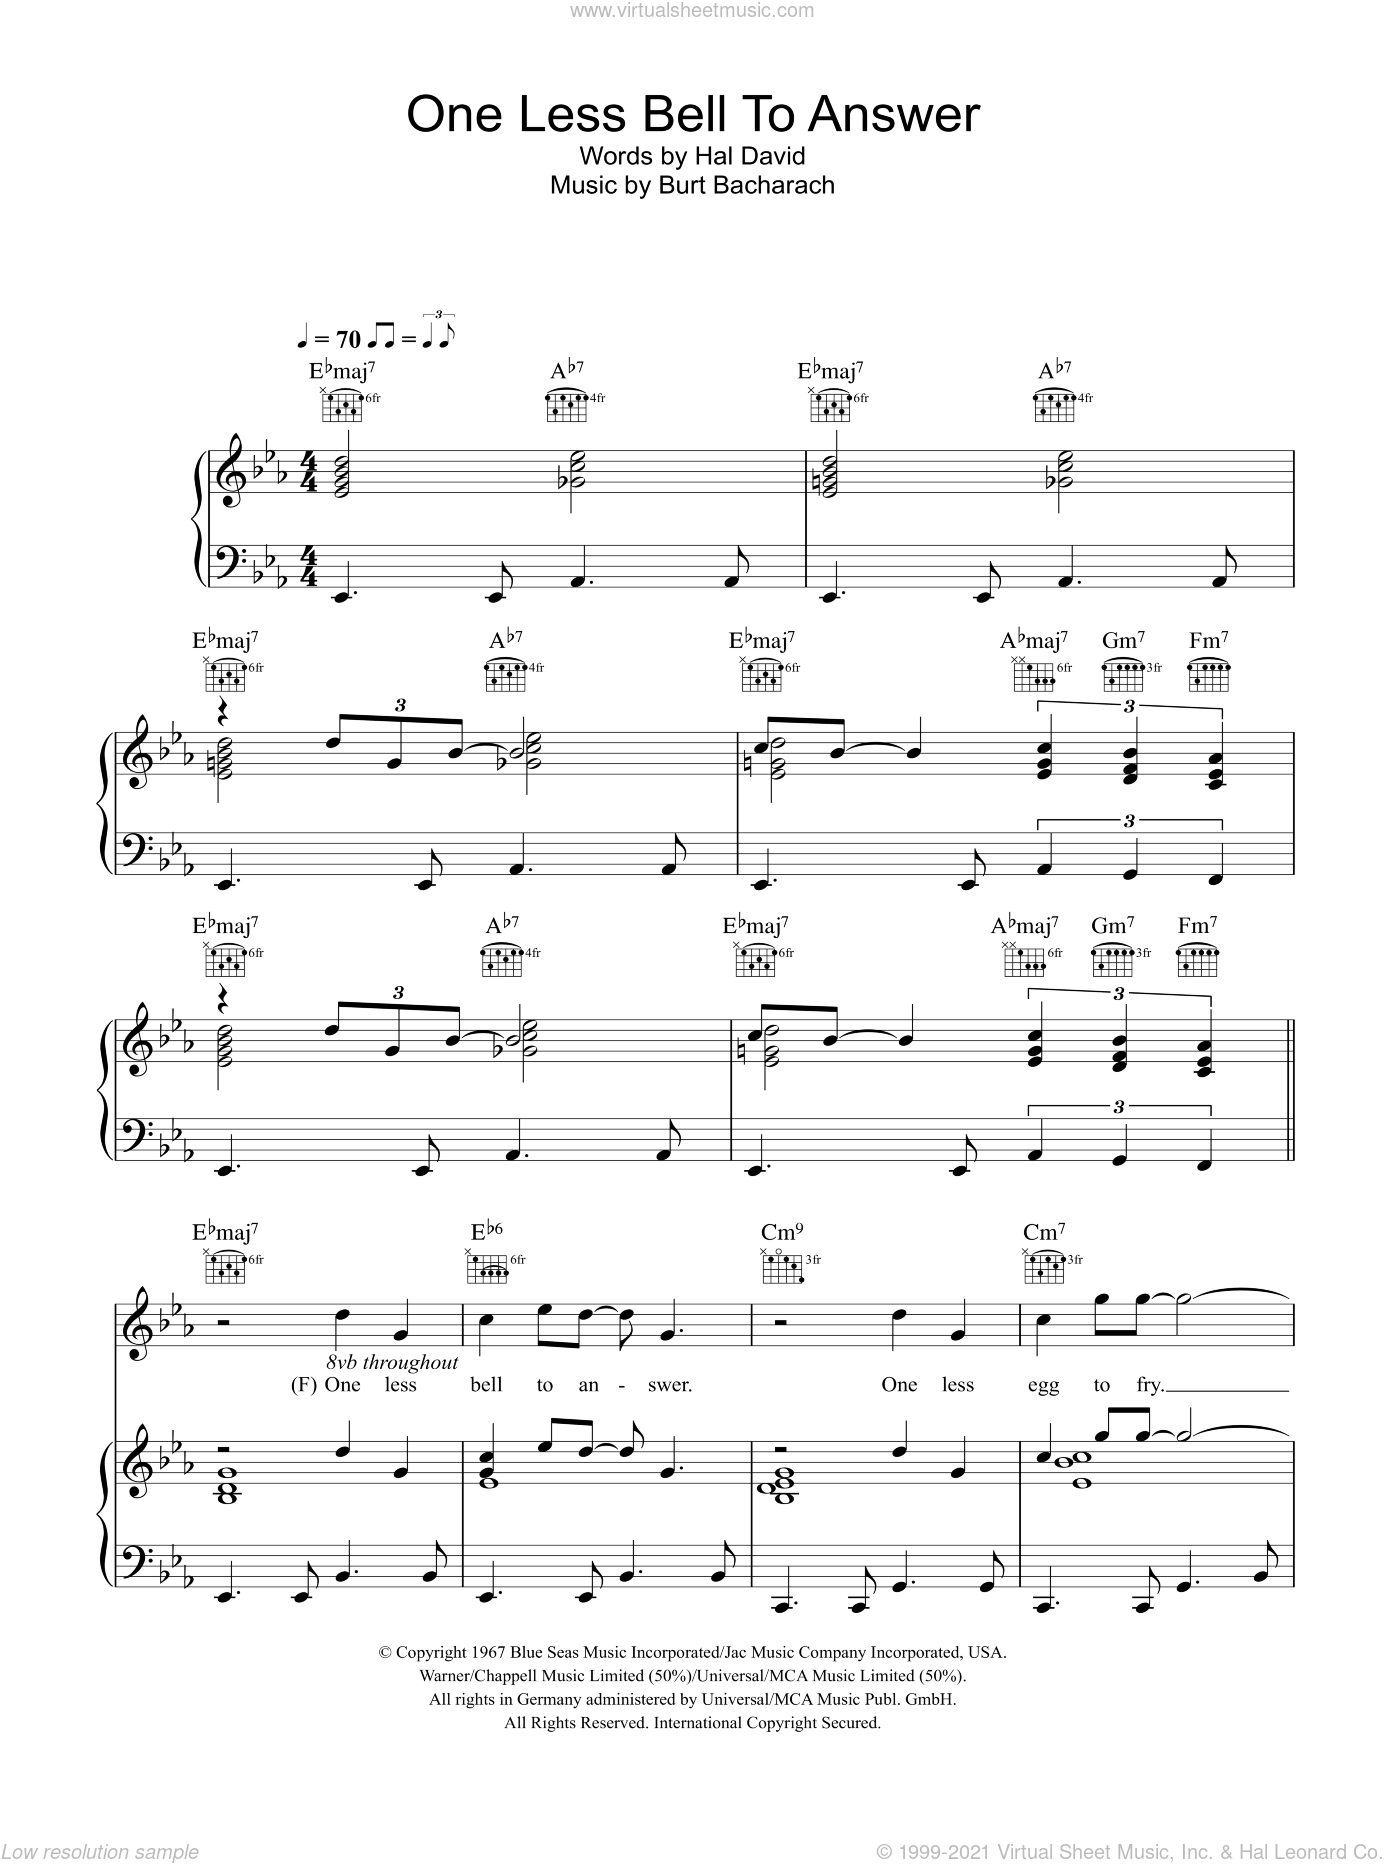 One Less Bell To Answer sheet music for voice, piano or guitar by Glee Cast, Bacharach & David, Miscellaneous, Burt Bacharach and Hal David. Score Image Preview.